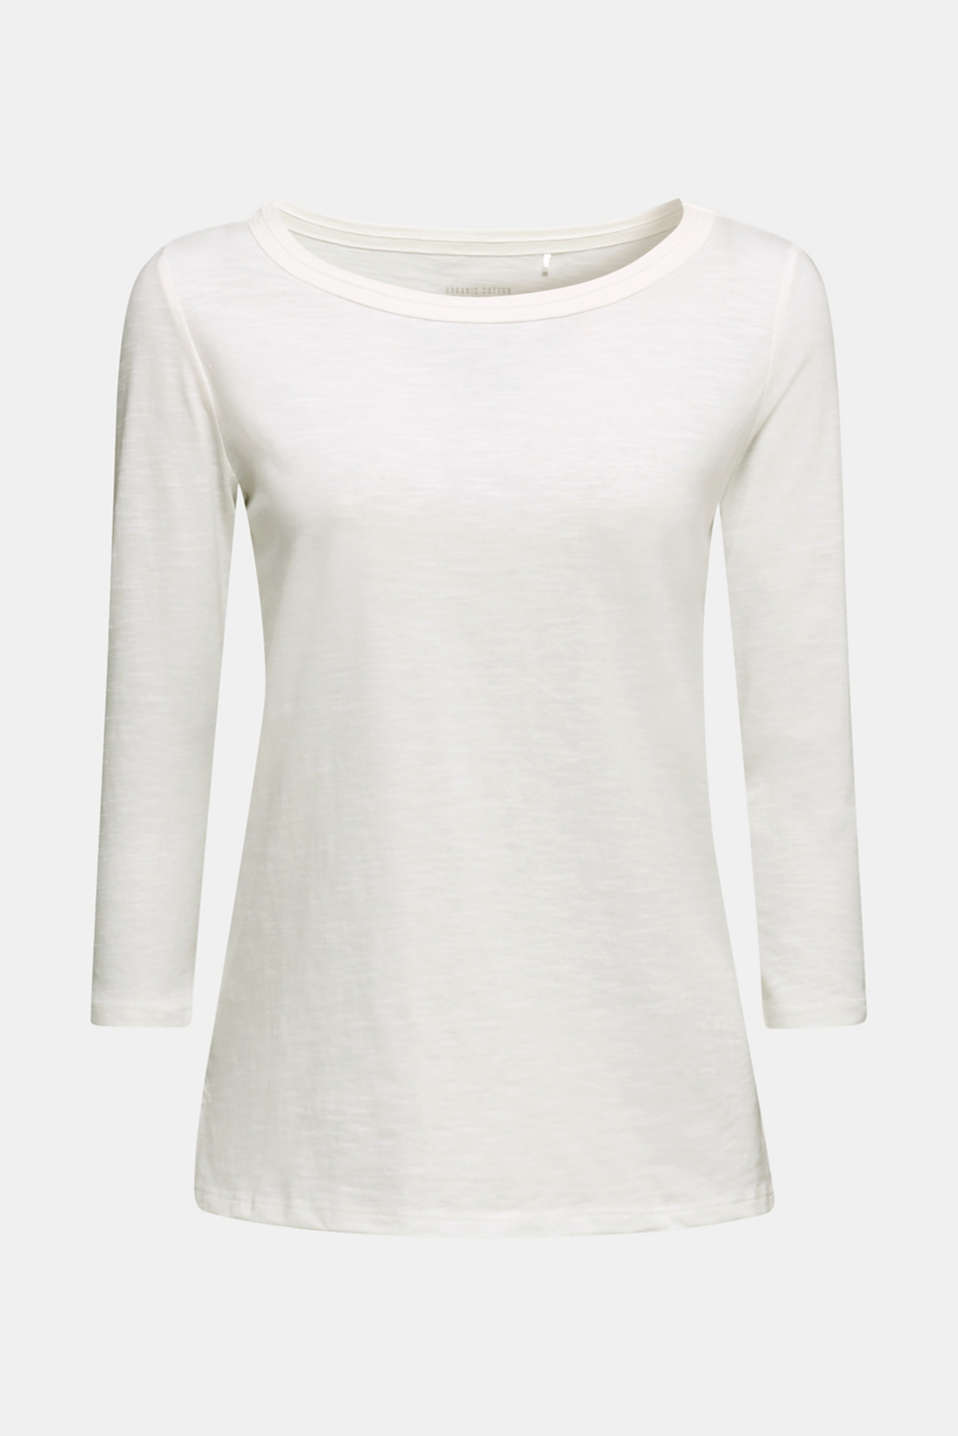 Slub top with 3/4-length sleeves, 100% cotton, OFF WHITE, detail image number 6